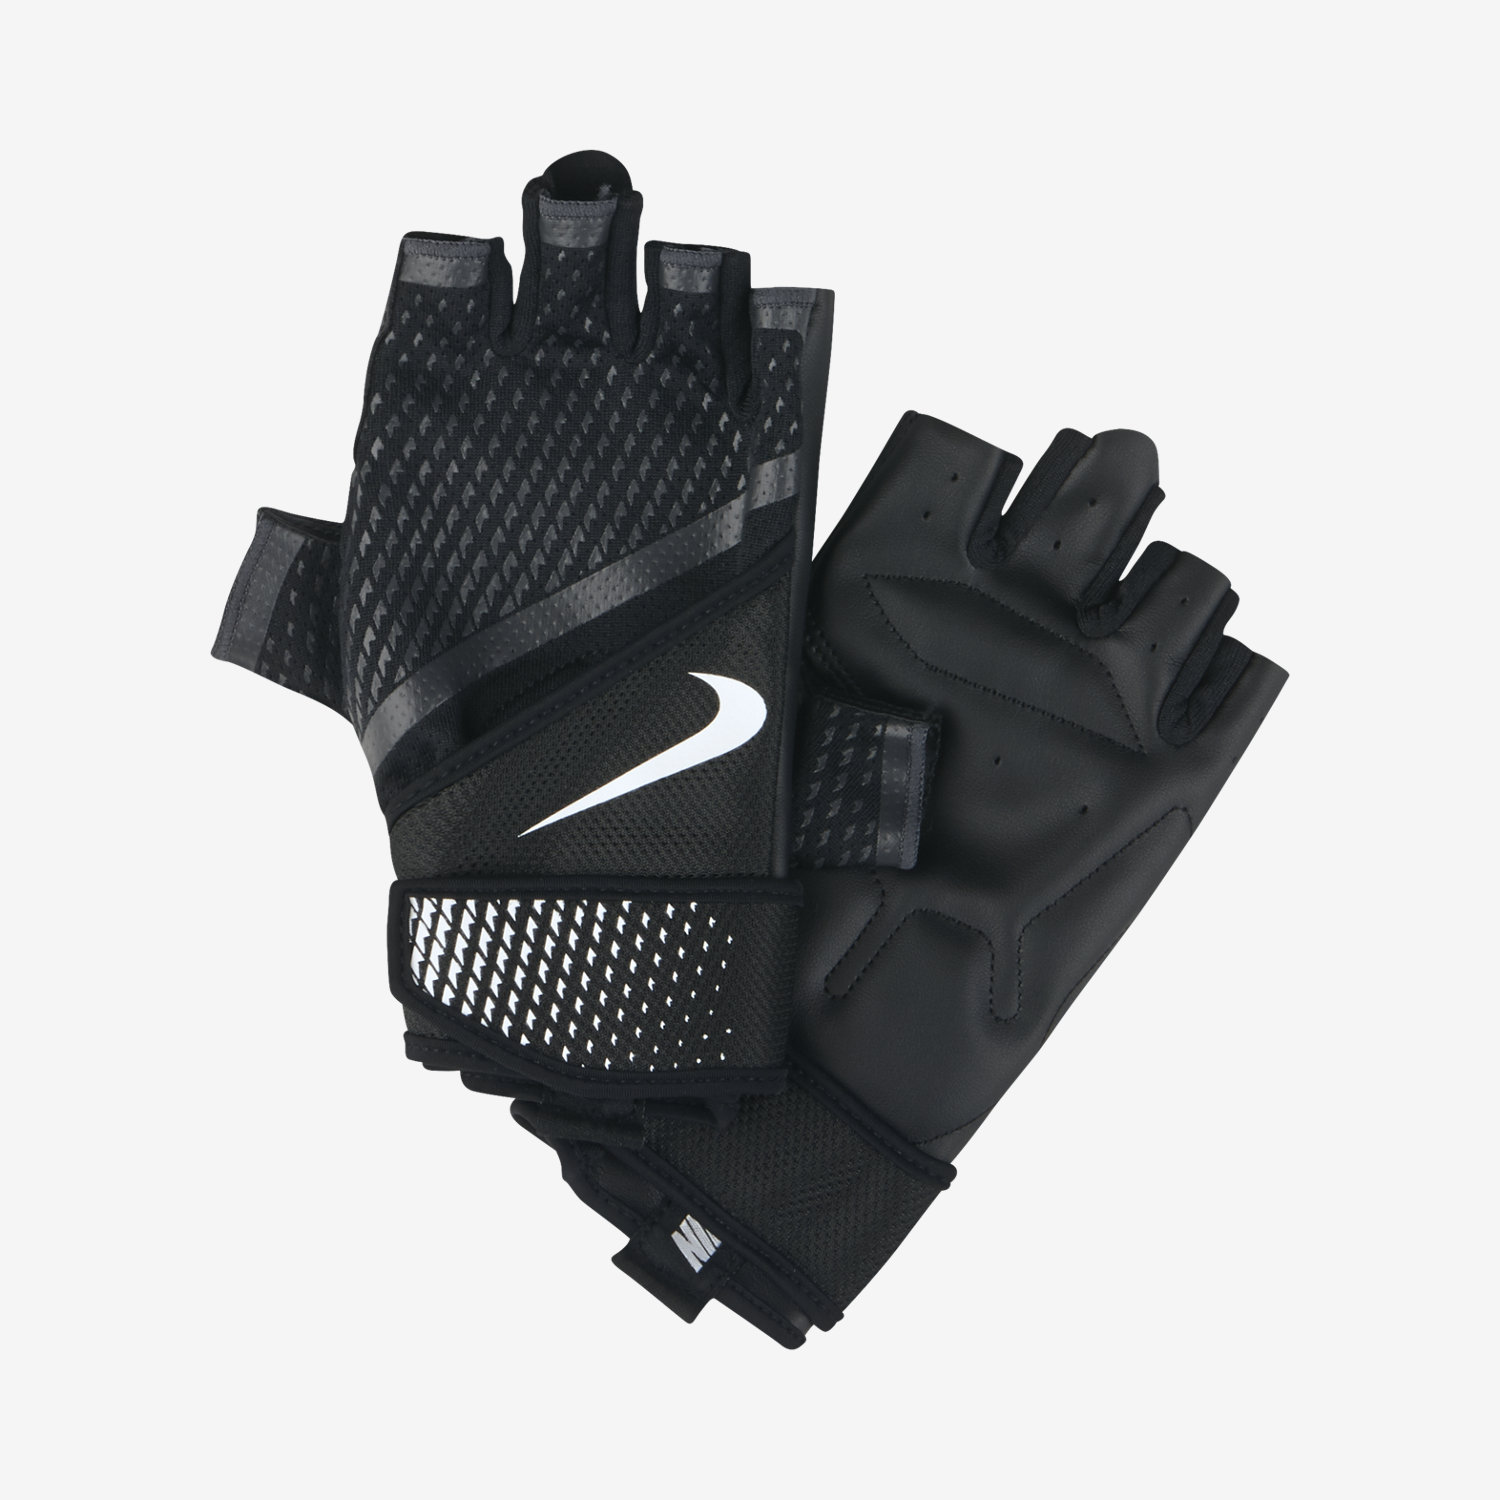 Black gloves mens - Black Gloves Mens 40